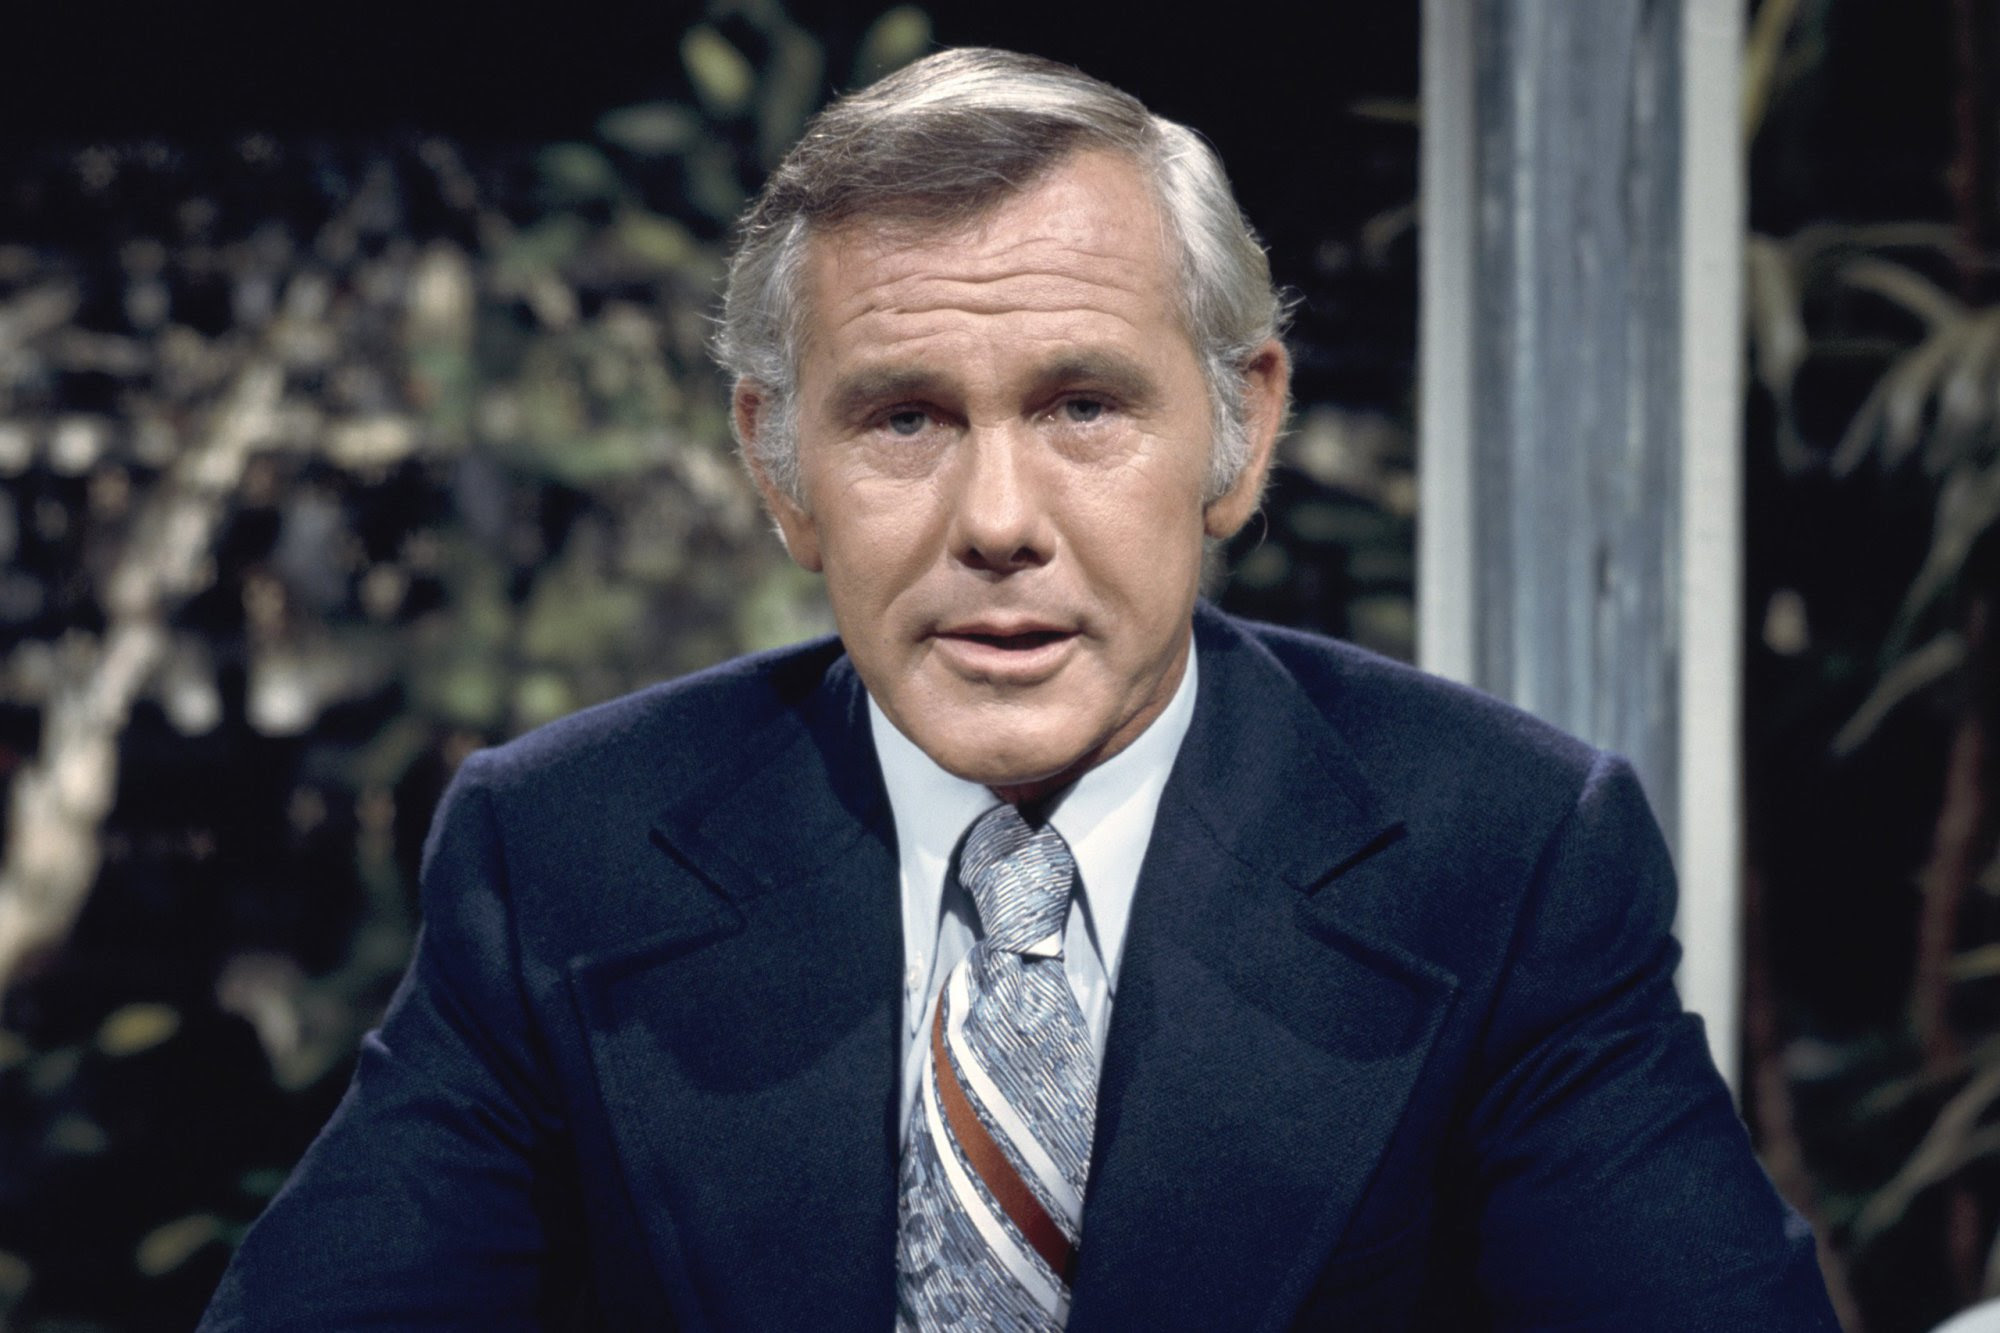 Johnny Carson was a master of timing. He knew when his jokes would generate a belly laugh and when they would fall flat. His genius was never to let any joke go unrewarded with a laugh, even if he had to die on stage to earn it.